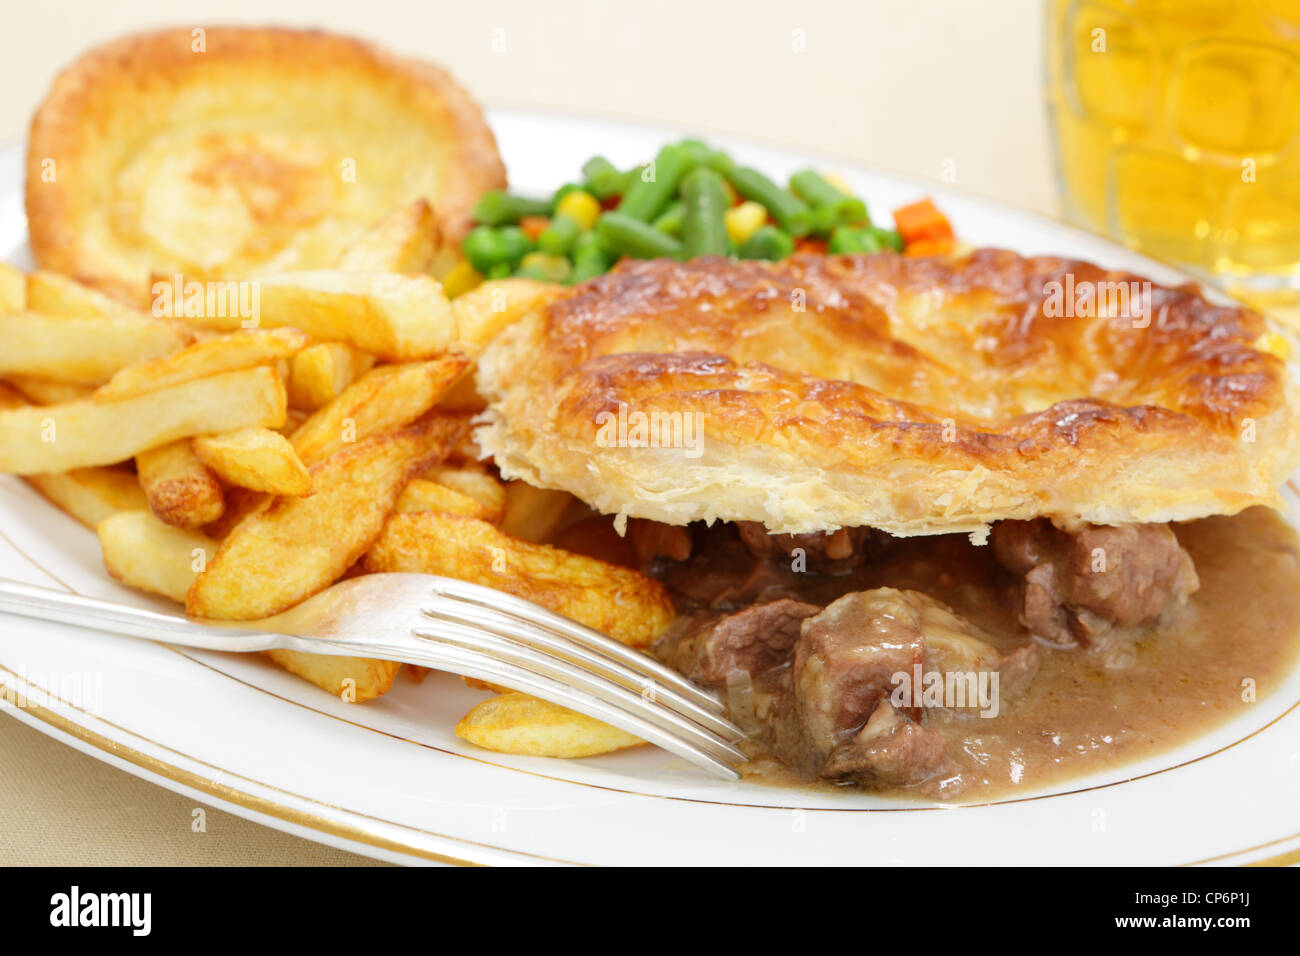 A meal of a homemade steak and kidney pie with french fried potato chips yorkshire pudding and mixed vegetables - Stock Image